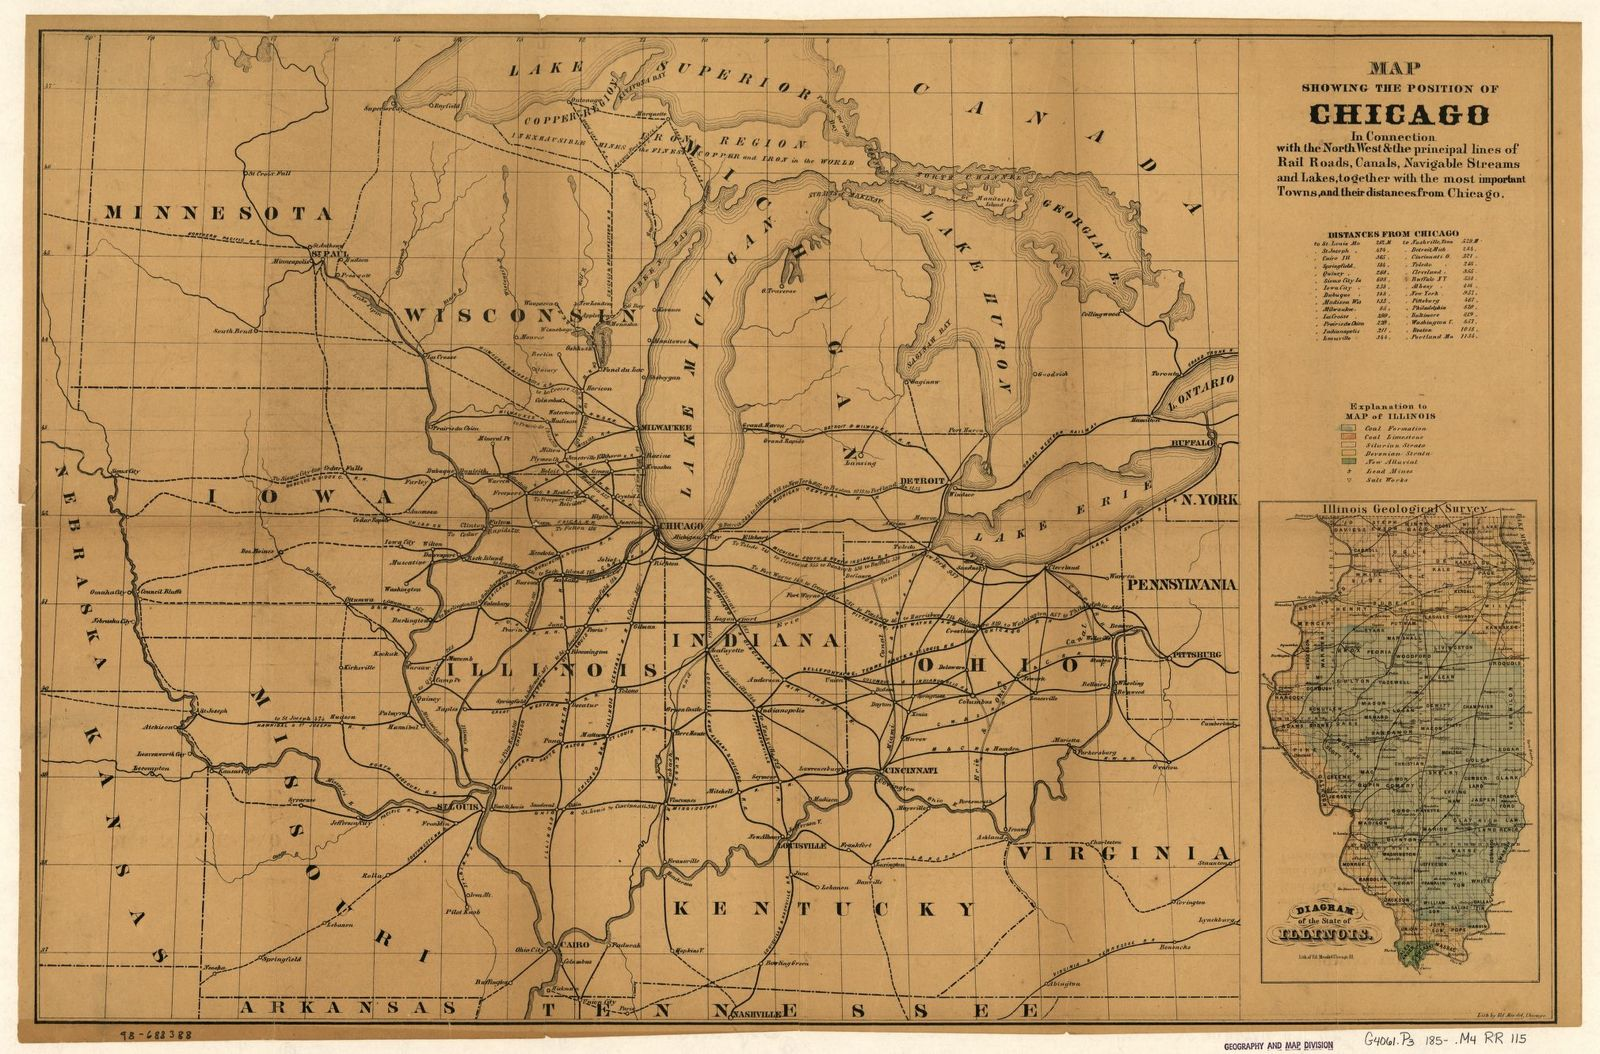 Map showing the position of Chicago in connection with the North West & the principal lines of rail roads, canals, navigable streams and lakes, together with the most important towns, and their distances from Chicago.